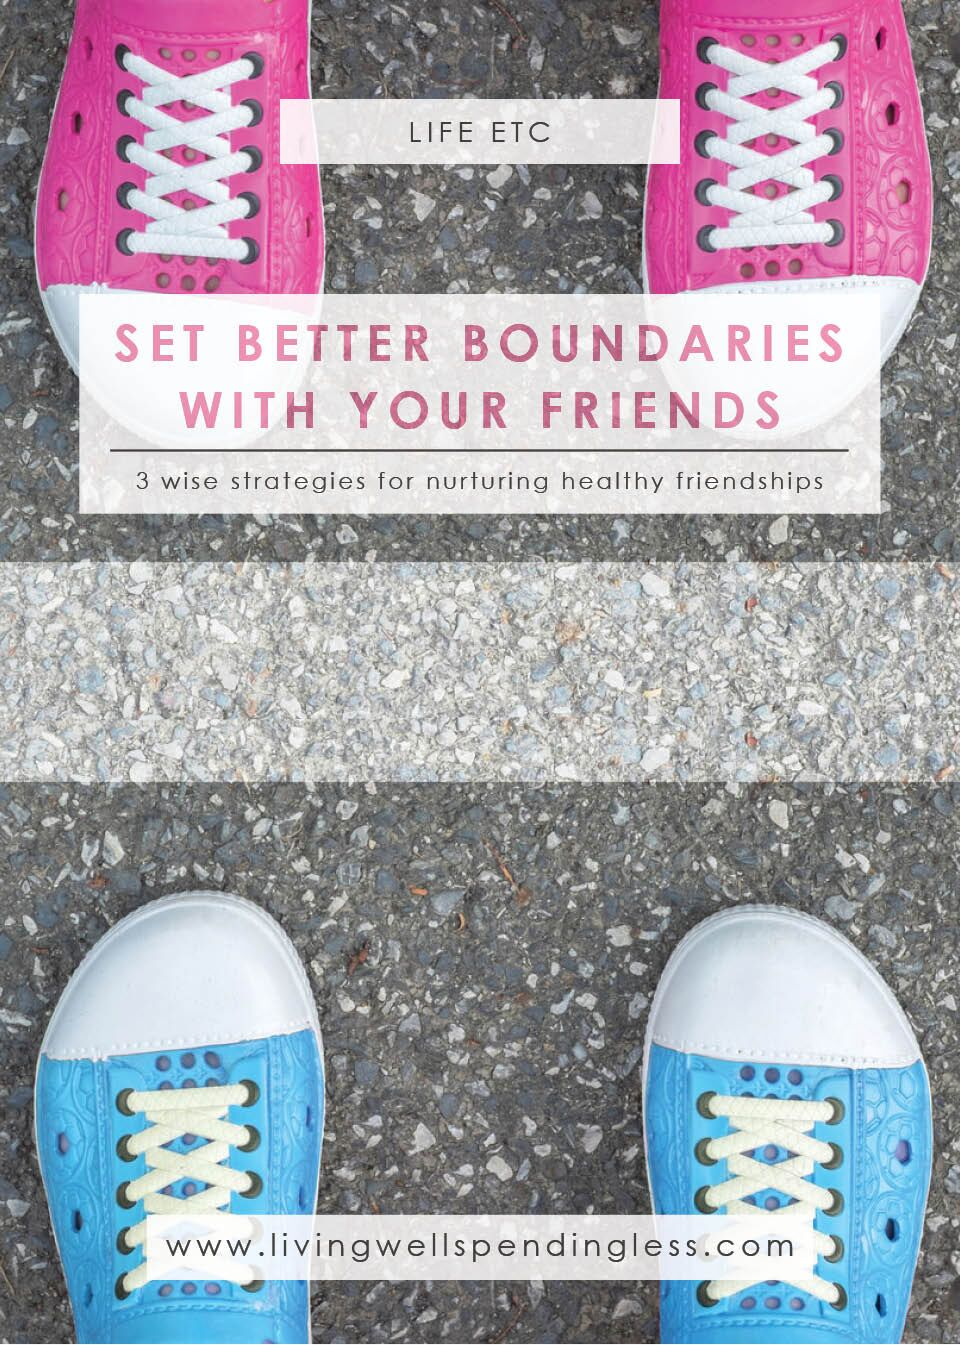 How to Set Better Boundaries with Your Friends: 3 Wise Strategies for Nurturing Healthy Friendships